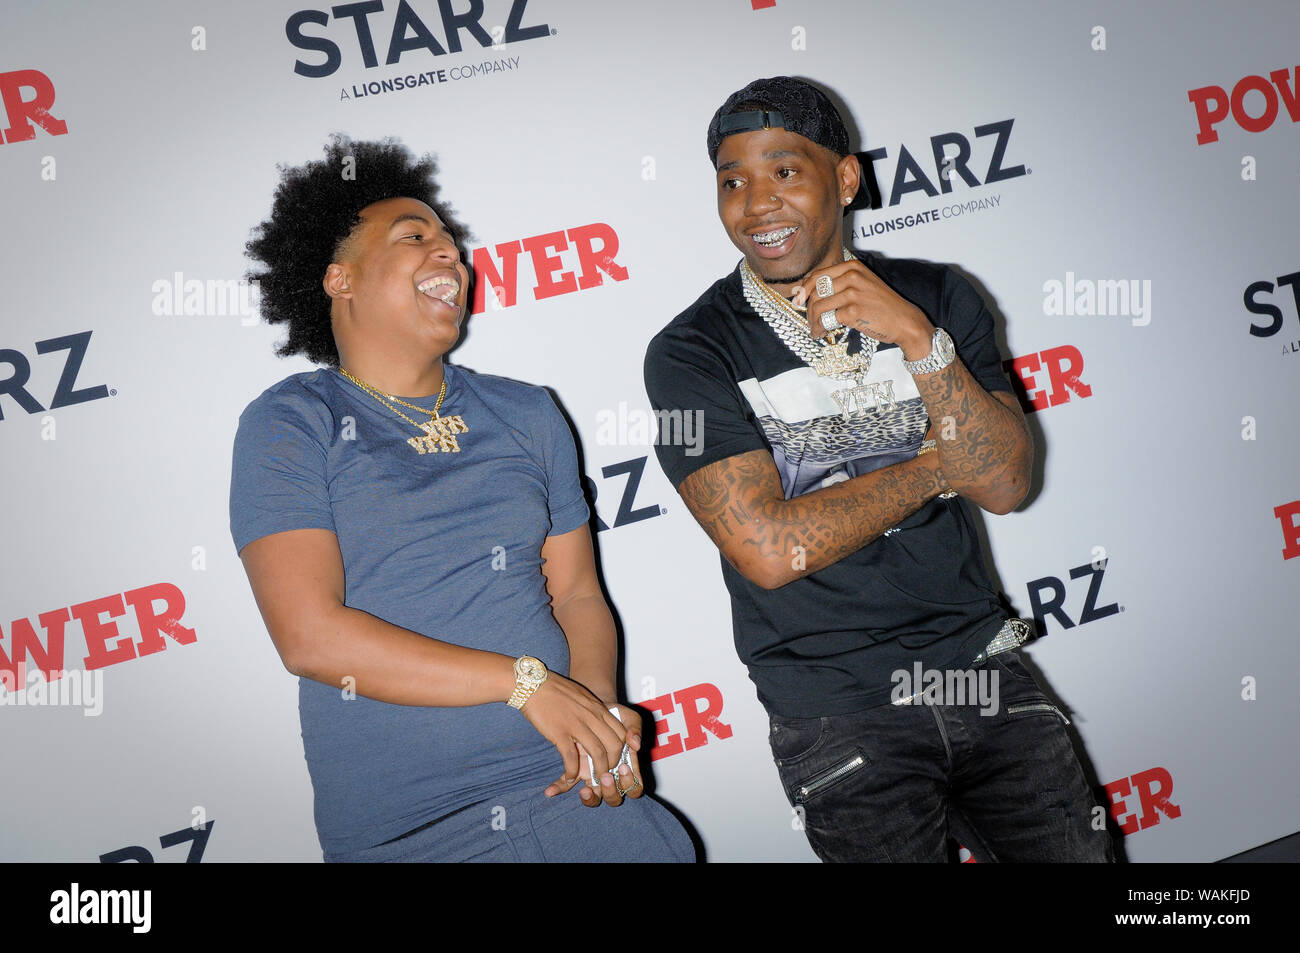 Yfn Lucci and a guest attend the Power Final Season Premiere